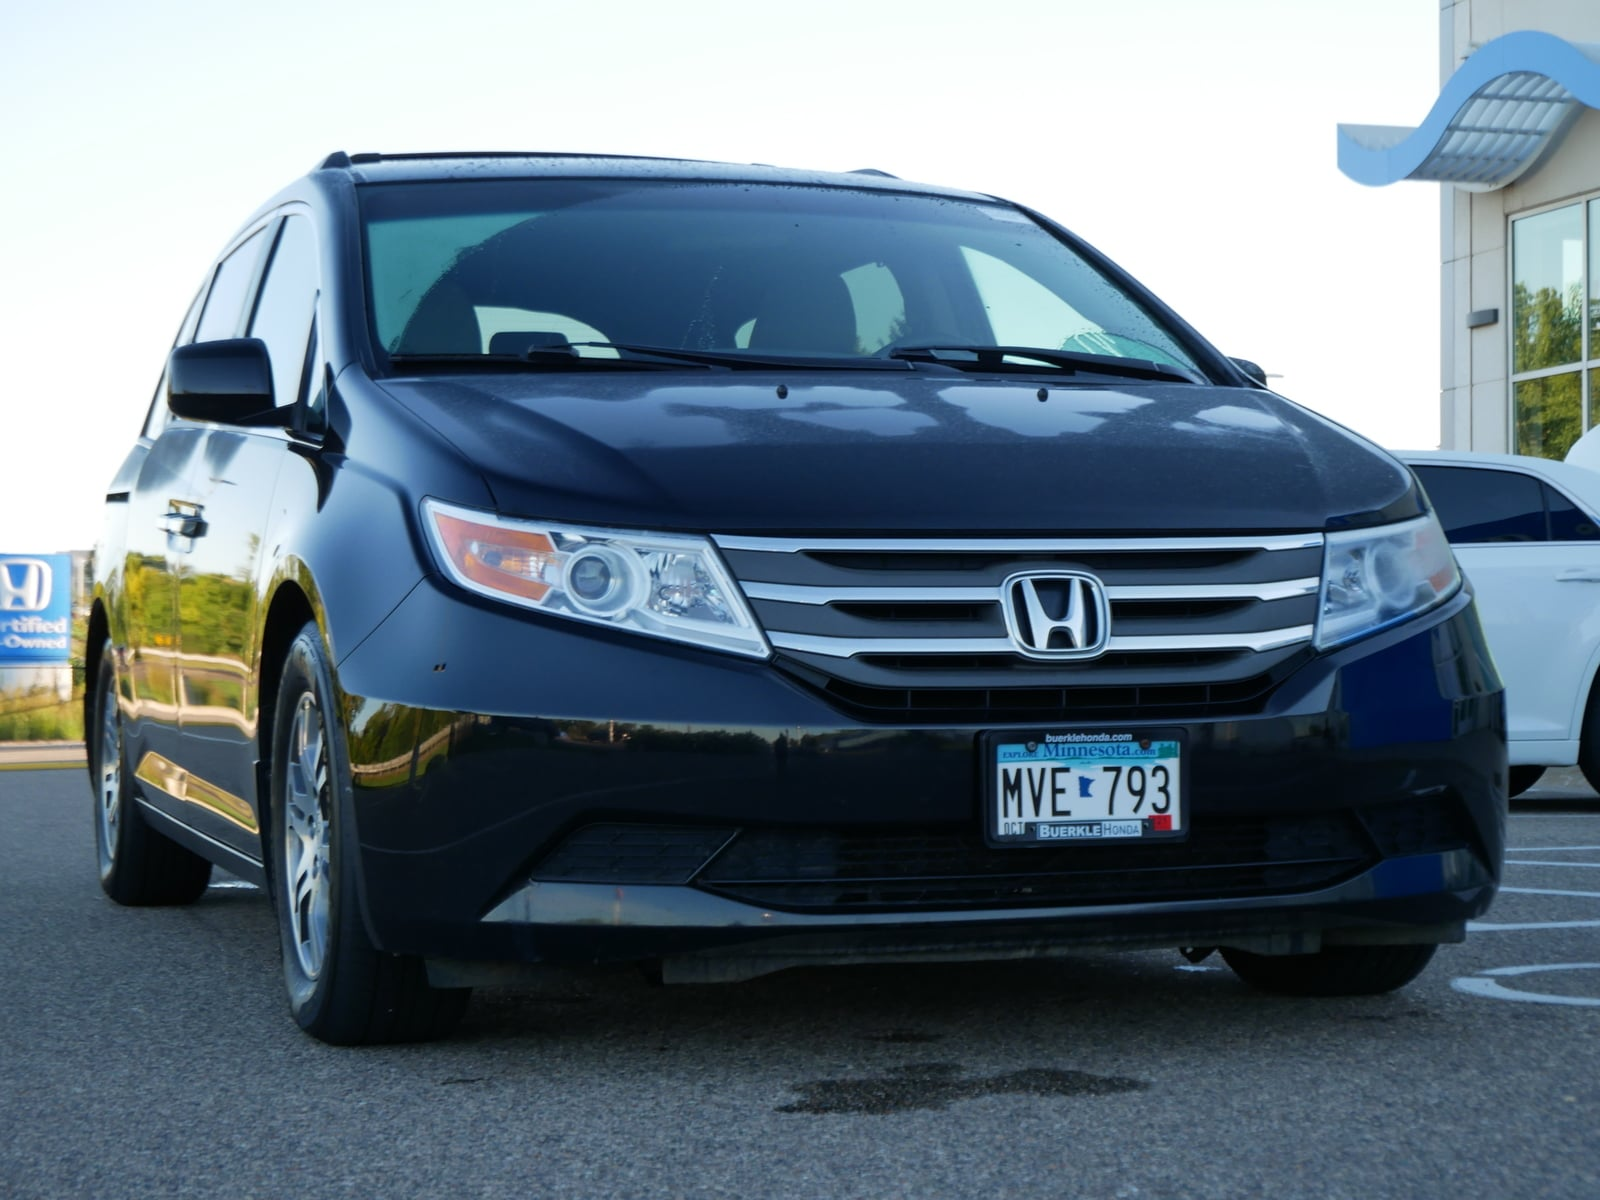 Used 2012 Honda Odyssey EX with VIN 5FNRL5H42CB005659 for sale in Saint Paul, Minnesota